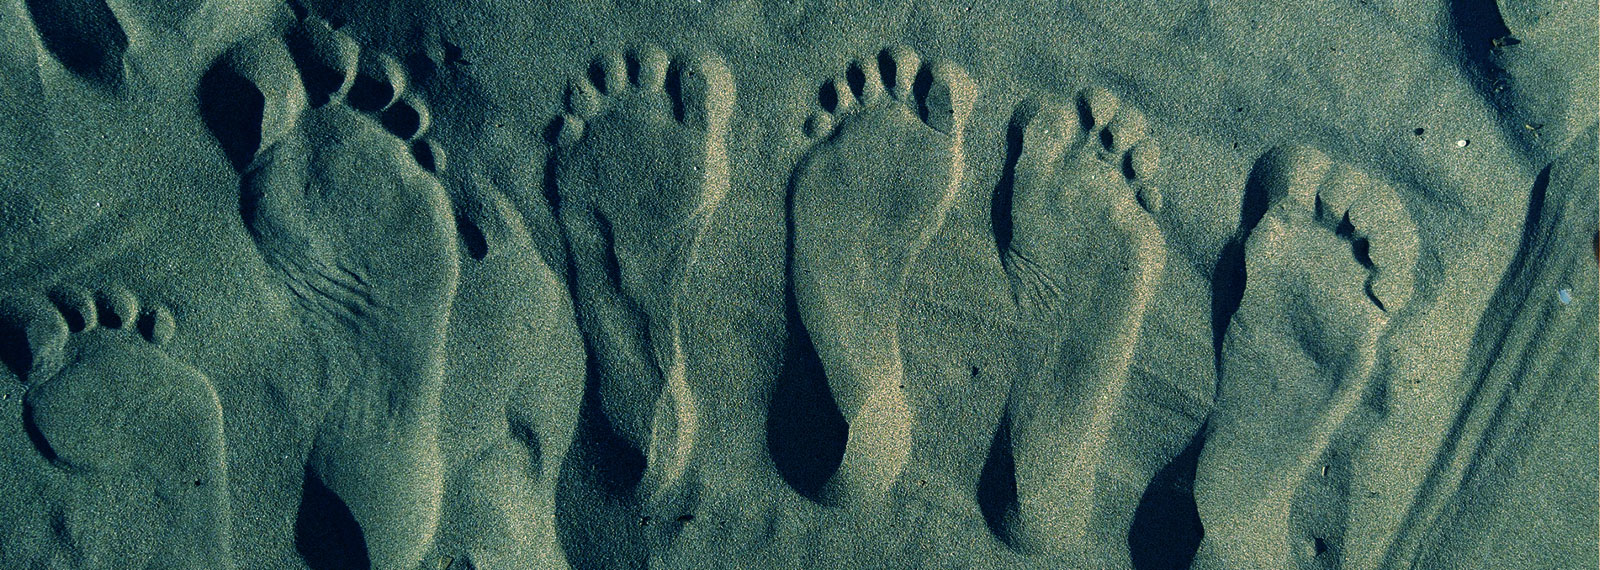 foot pro pod blog - The Foot Health Care Specialist